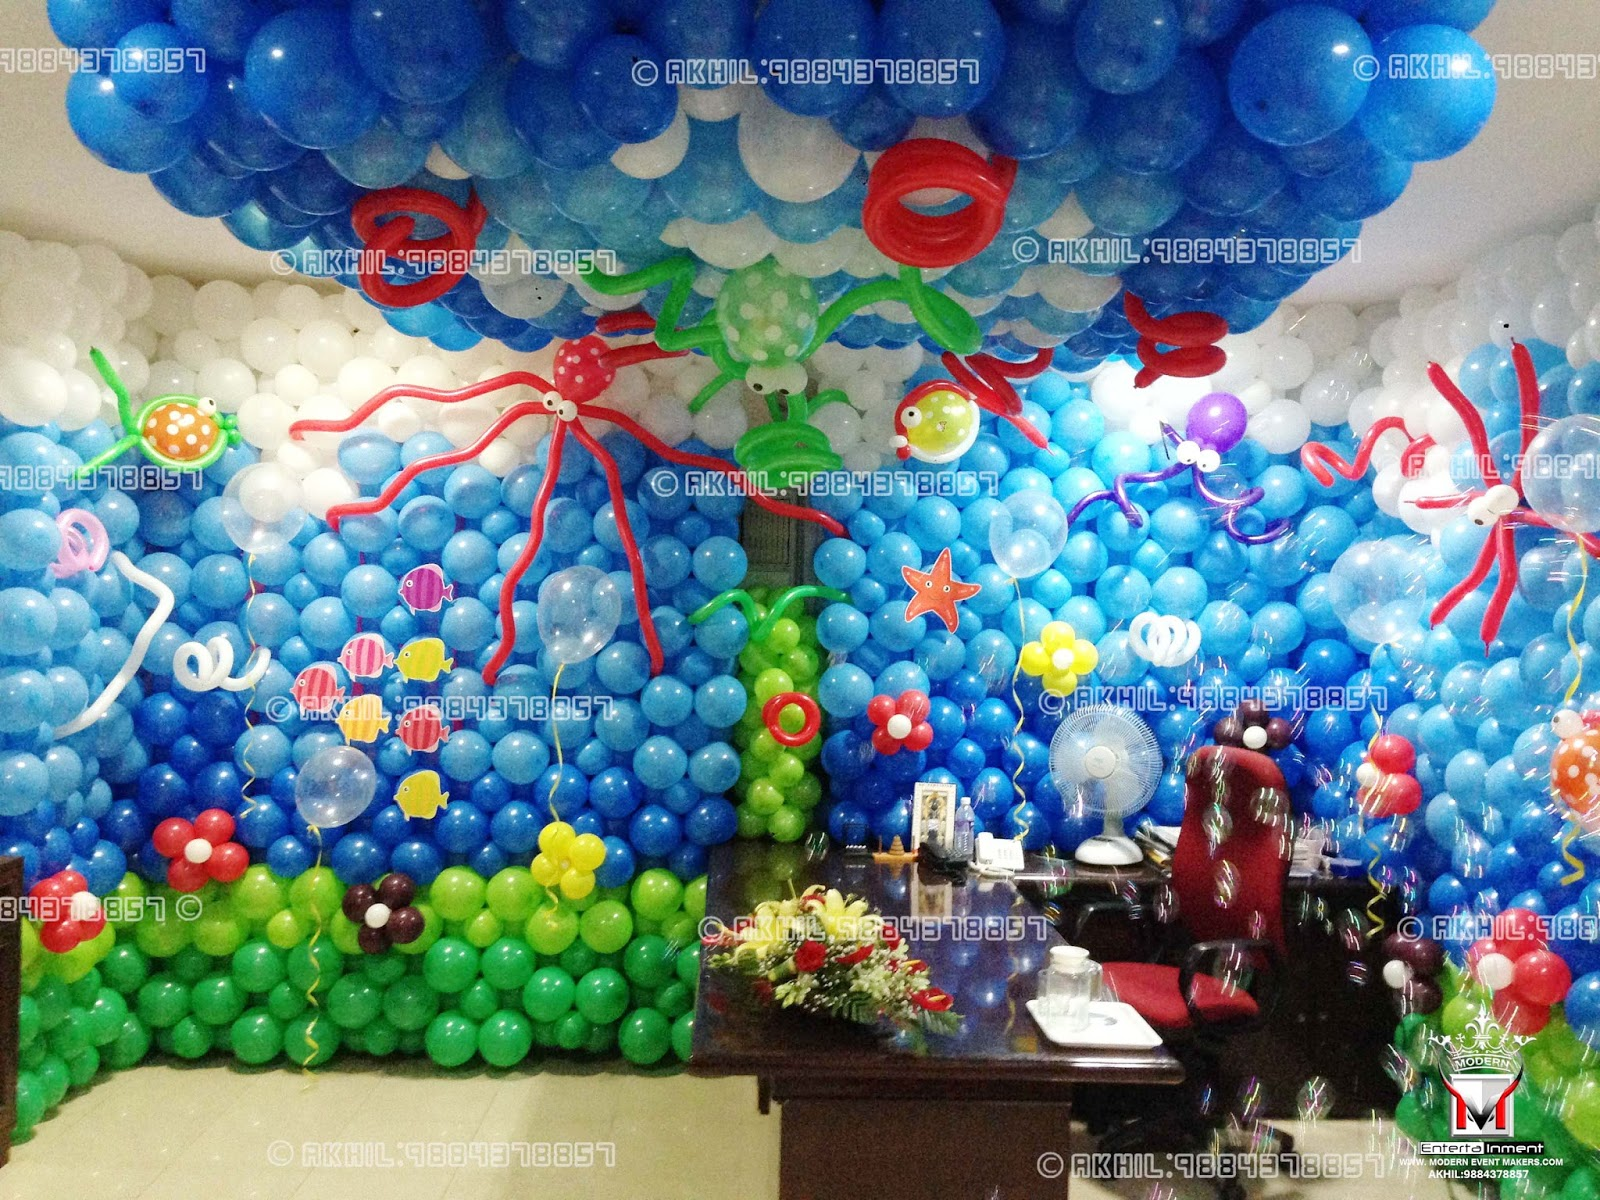 A top class balloon decorators in chennai akhil 9884378857 for Balloon decoration ideas for birthday party